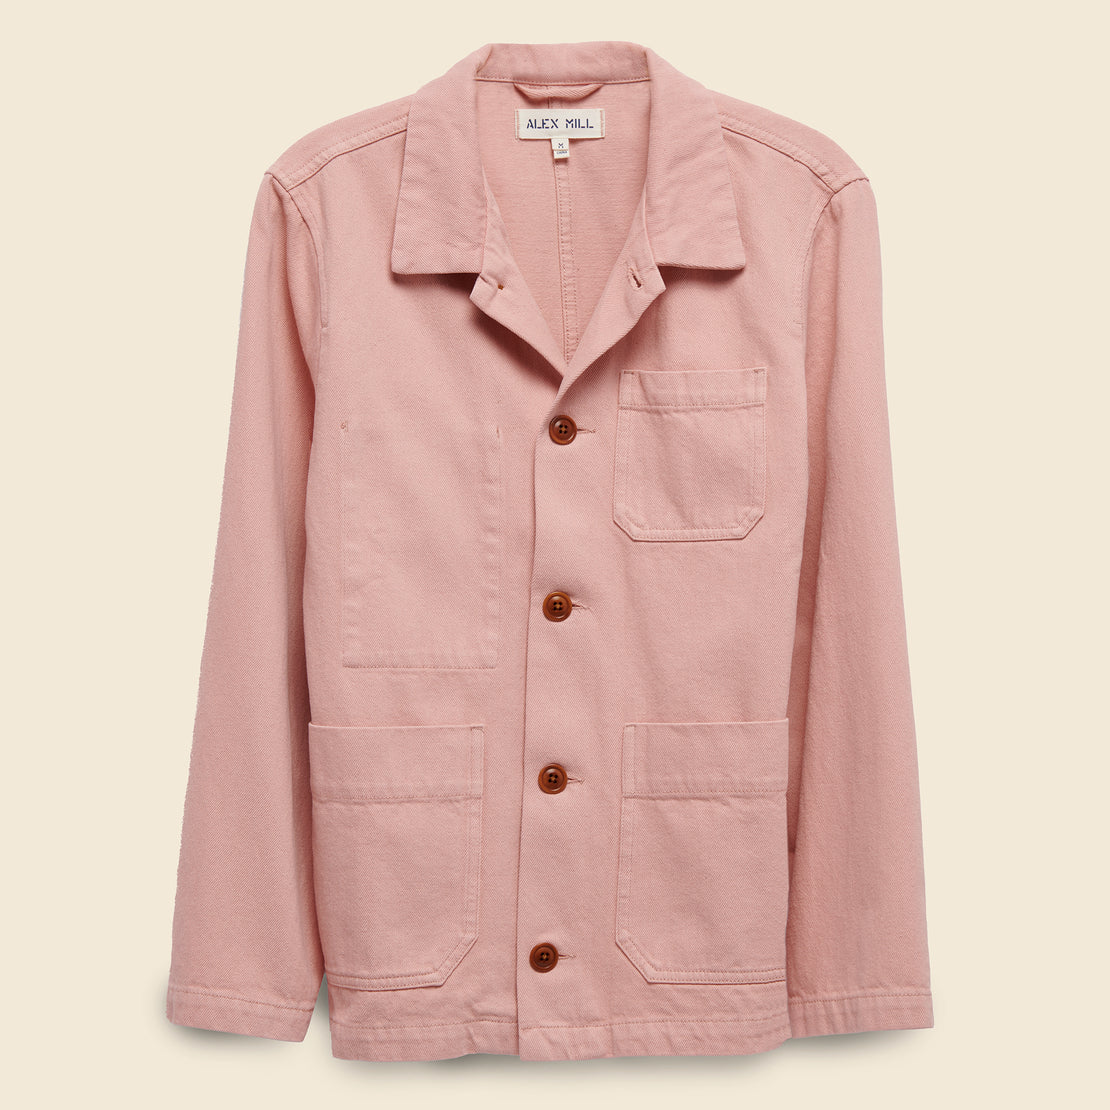 Alex Mill Recycled Denim Work Jacket - Minty Rose